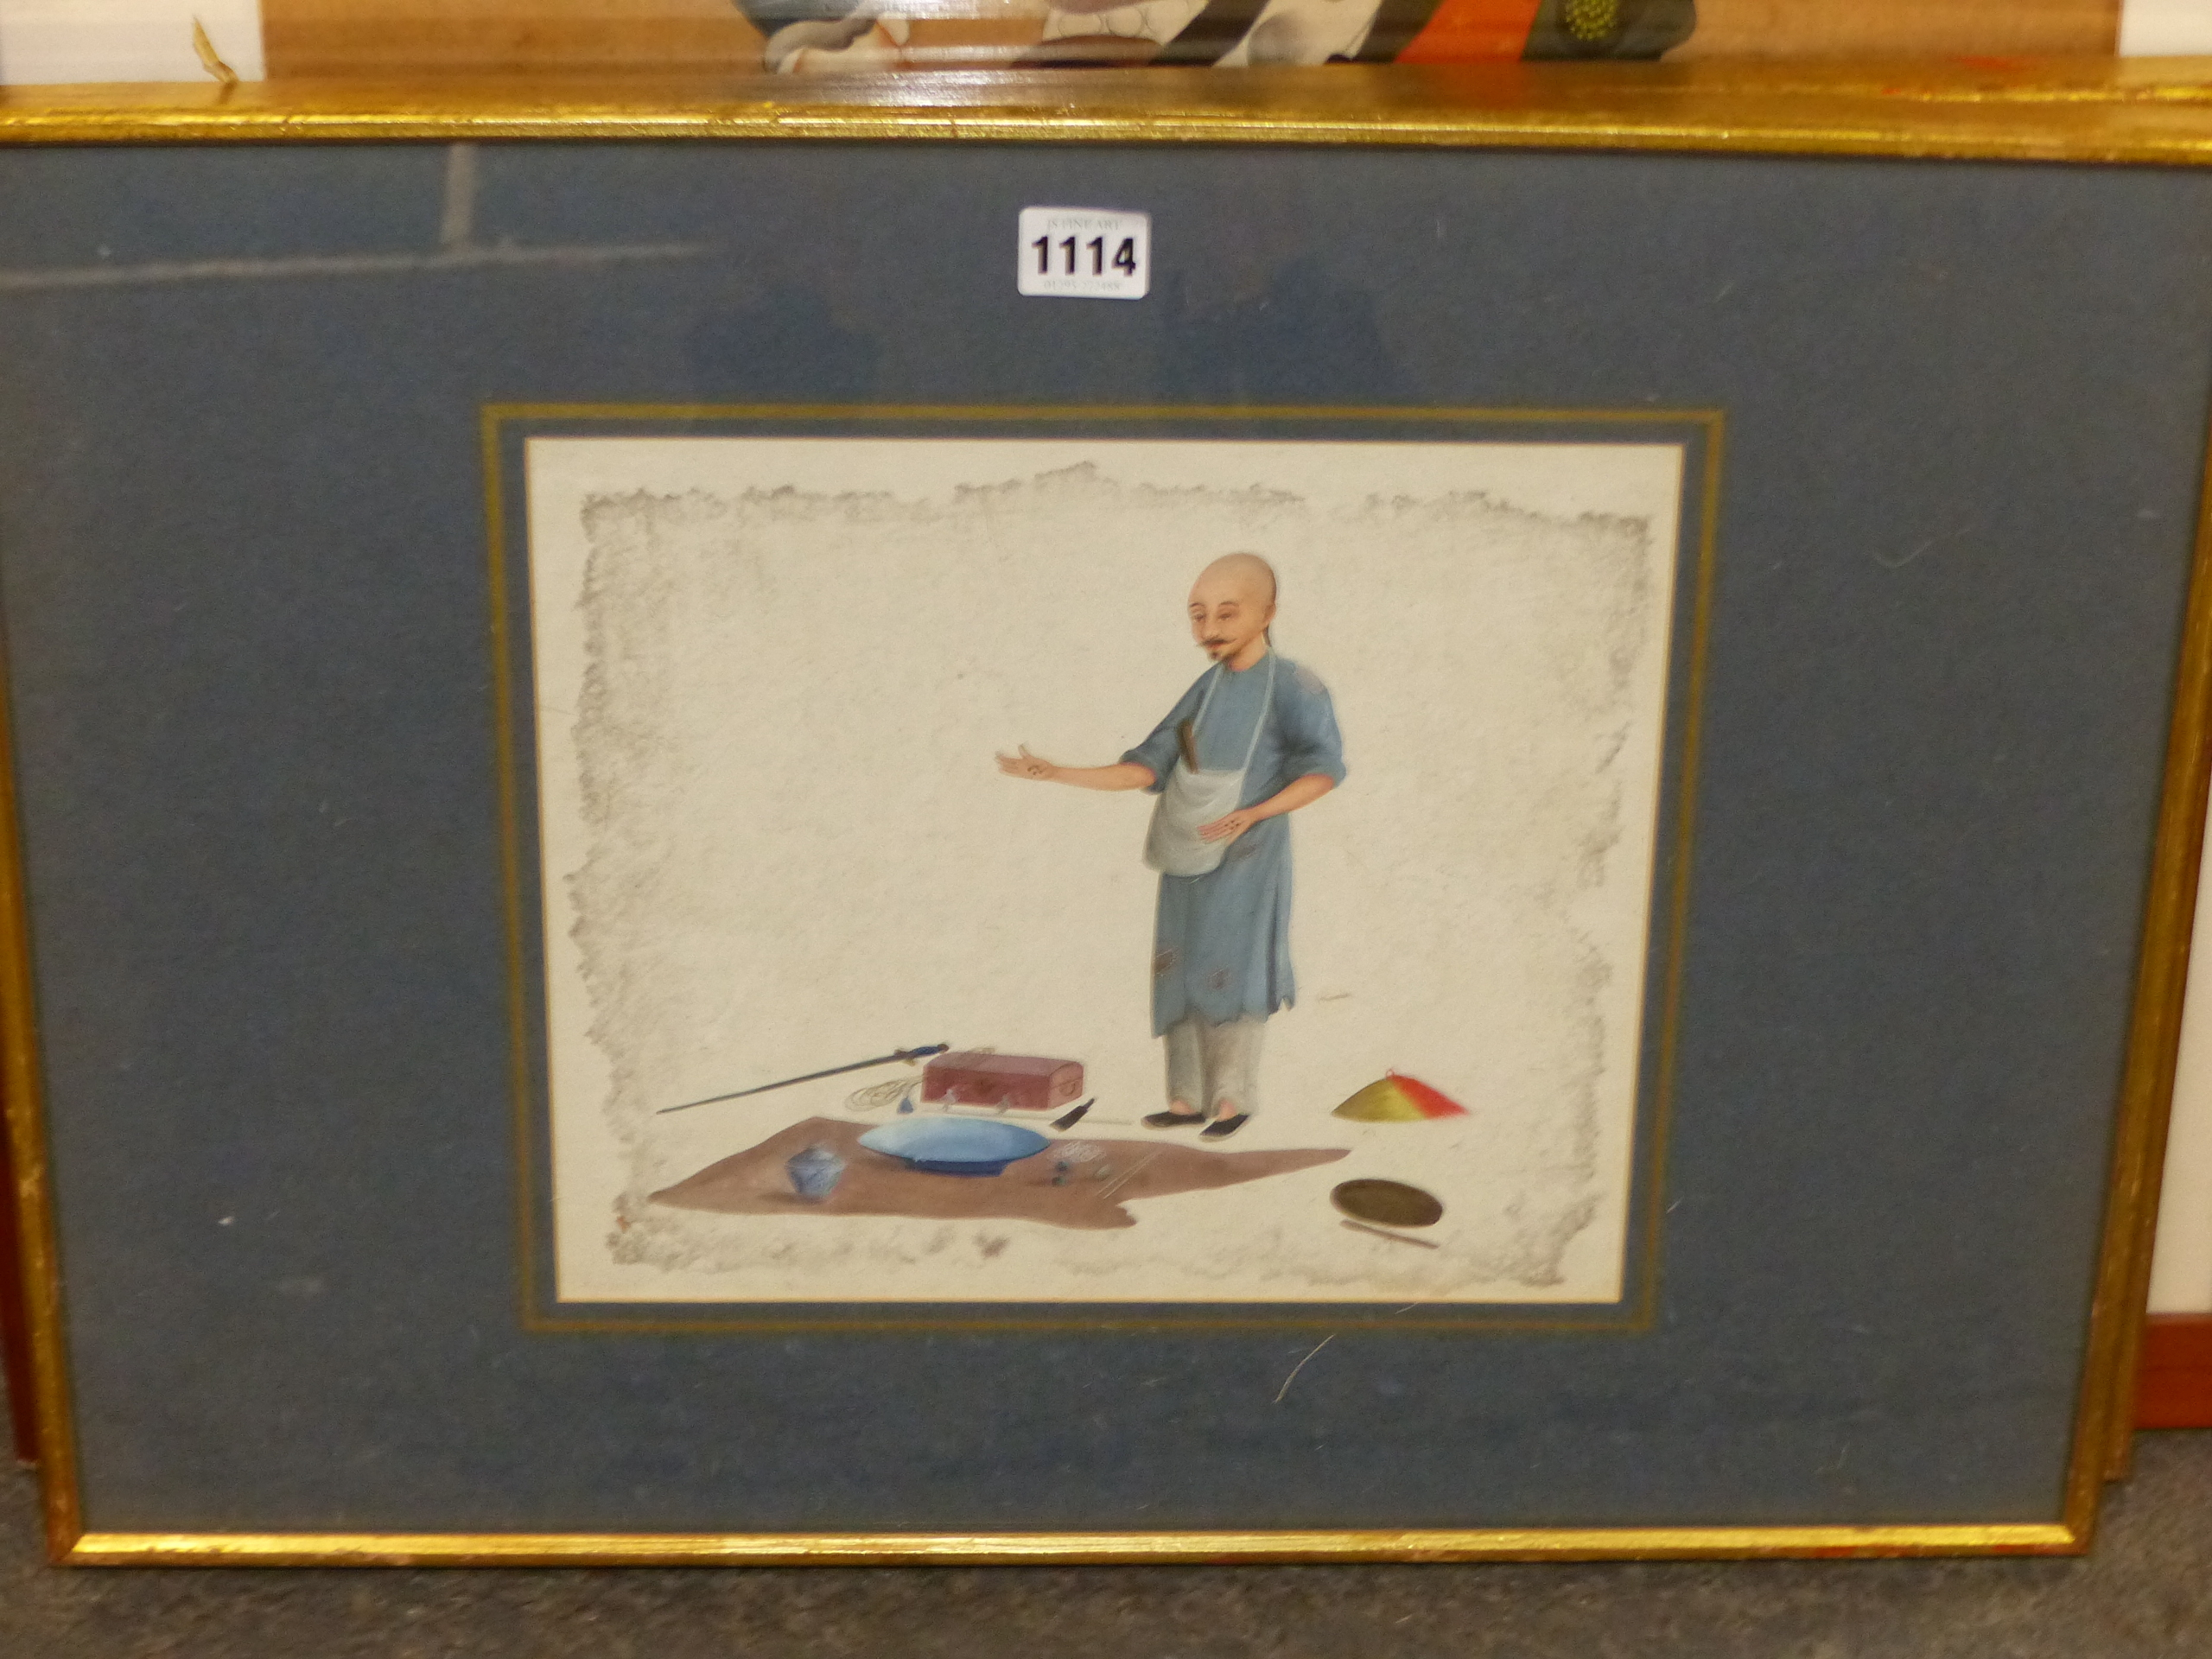 TWO GILT FRAMED CHINESE WATERCOLOURS, ONE OF A MAN SEATED AT A TABLE WRITING, THE OTHER OF A MAN - Image 2 of 5